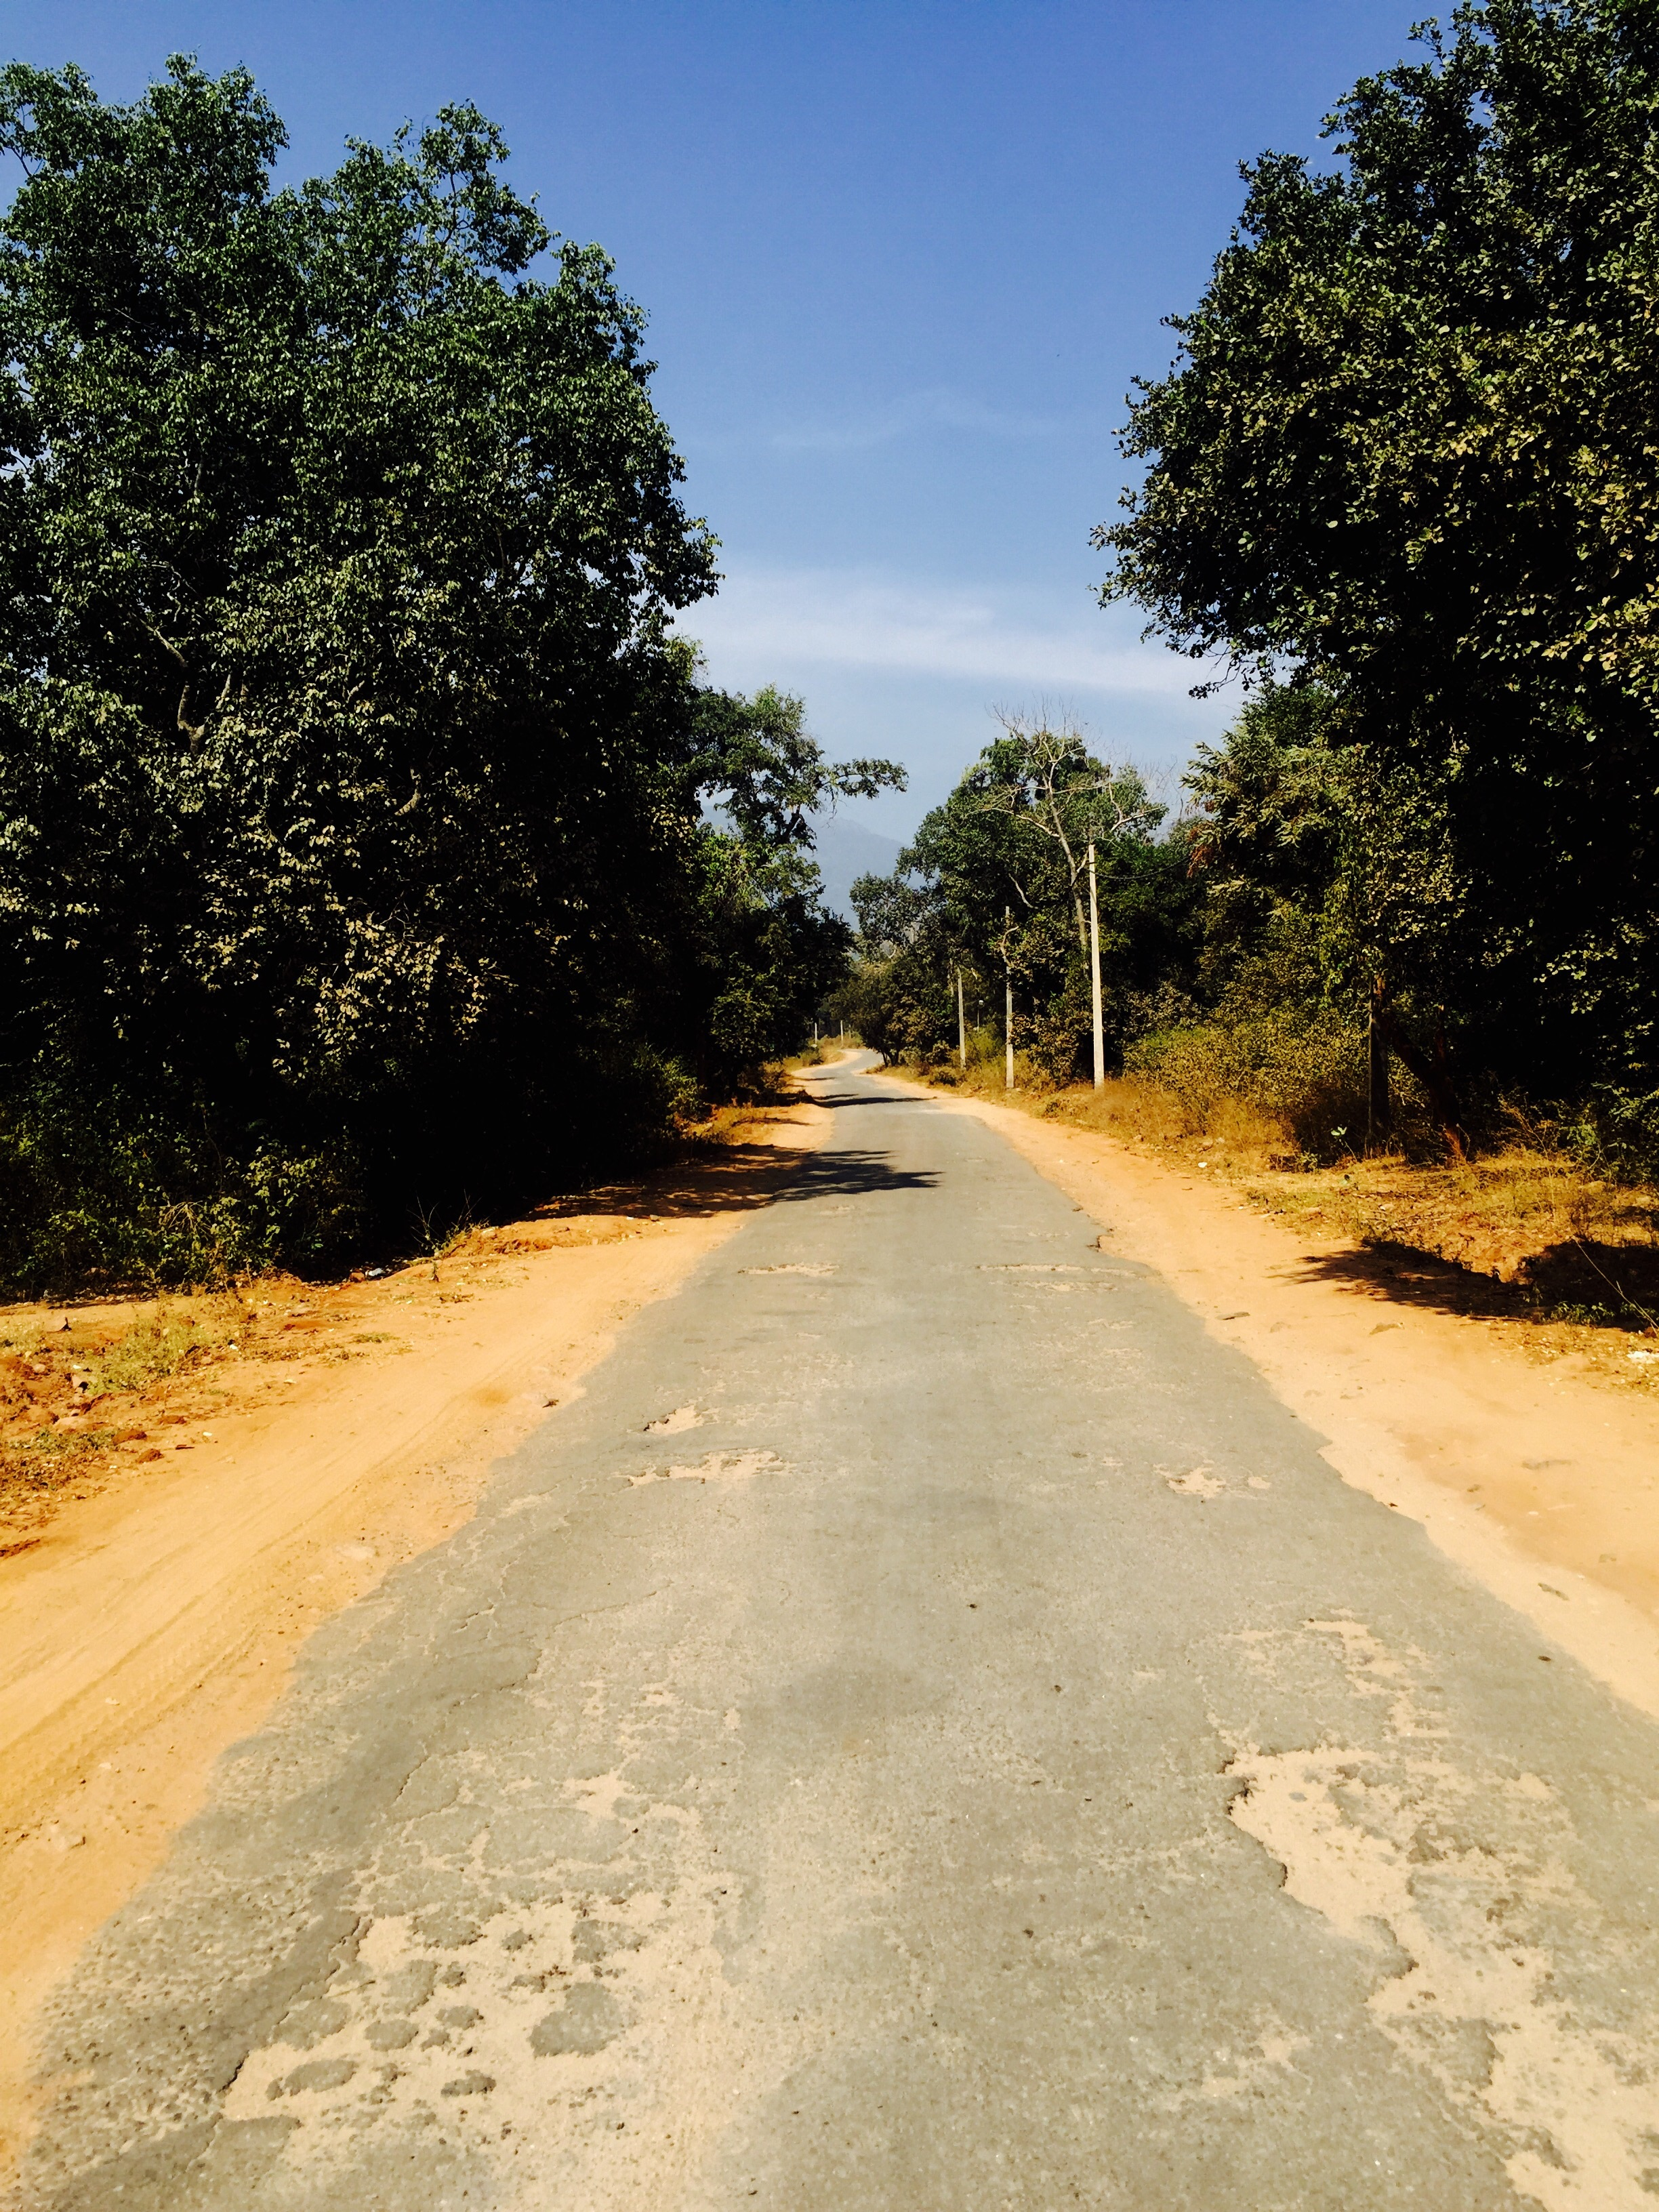 Walking through Palur - Recent conflict between poachers and police